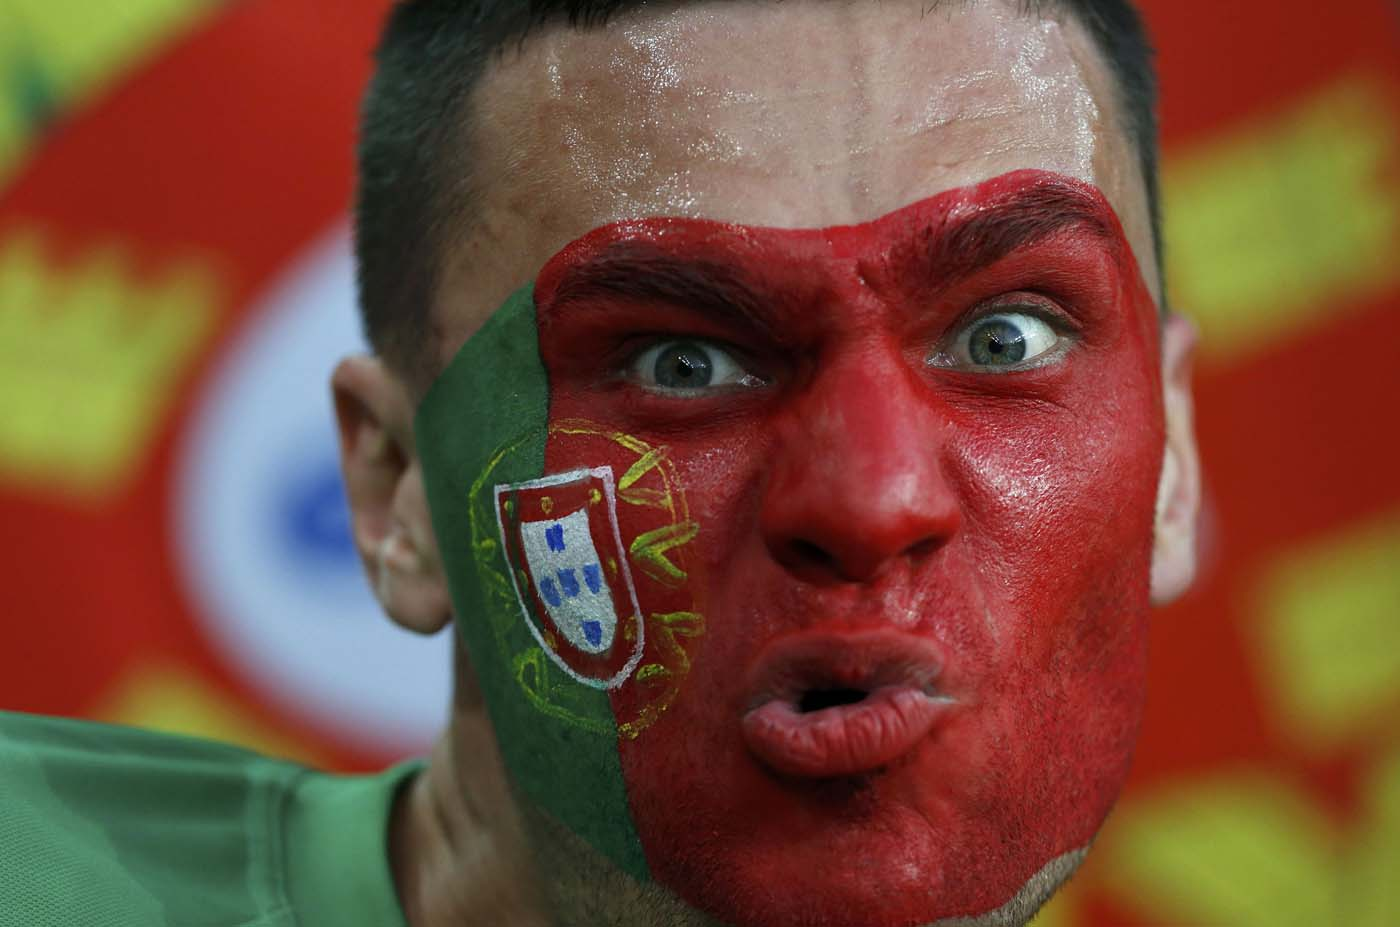 A Portugal's fan gestures as he waits for the start of their Group B Euro 2012 soccer match against Netherlands at the Metalist stadium in Kharkiv June 17, 2012. (Alessandro Bianchi/Reuters)